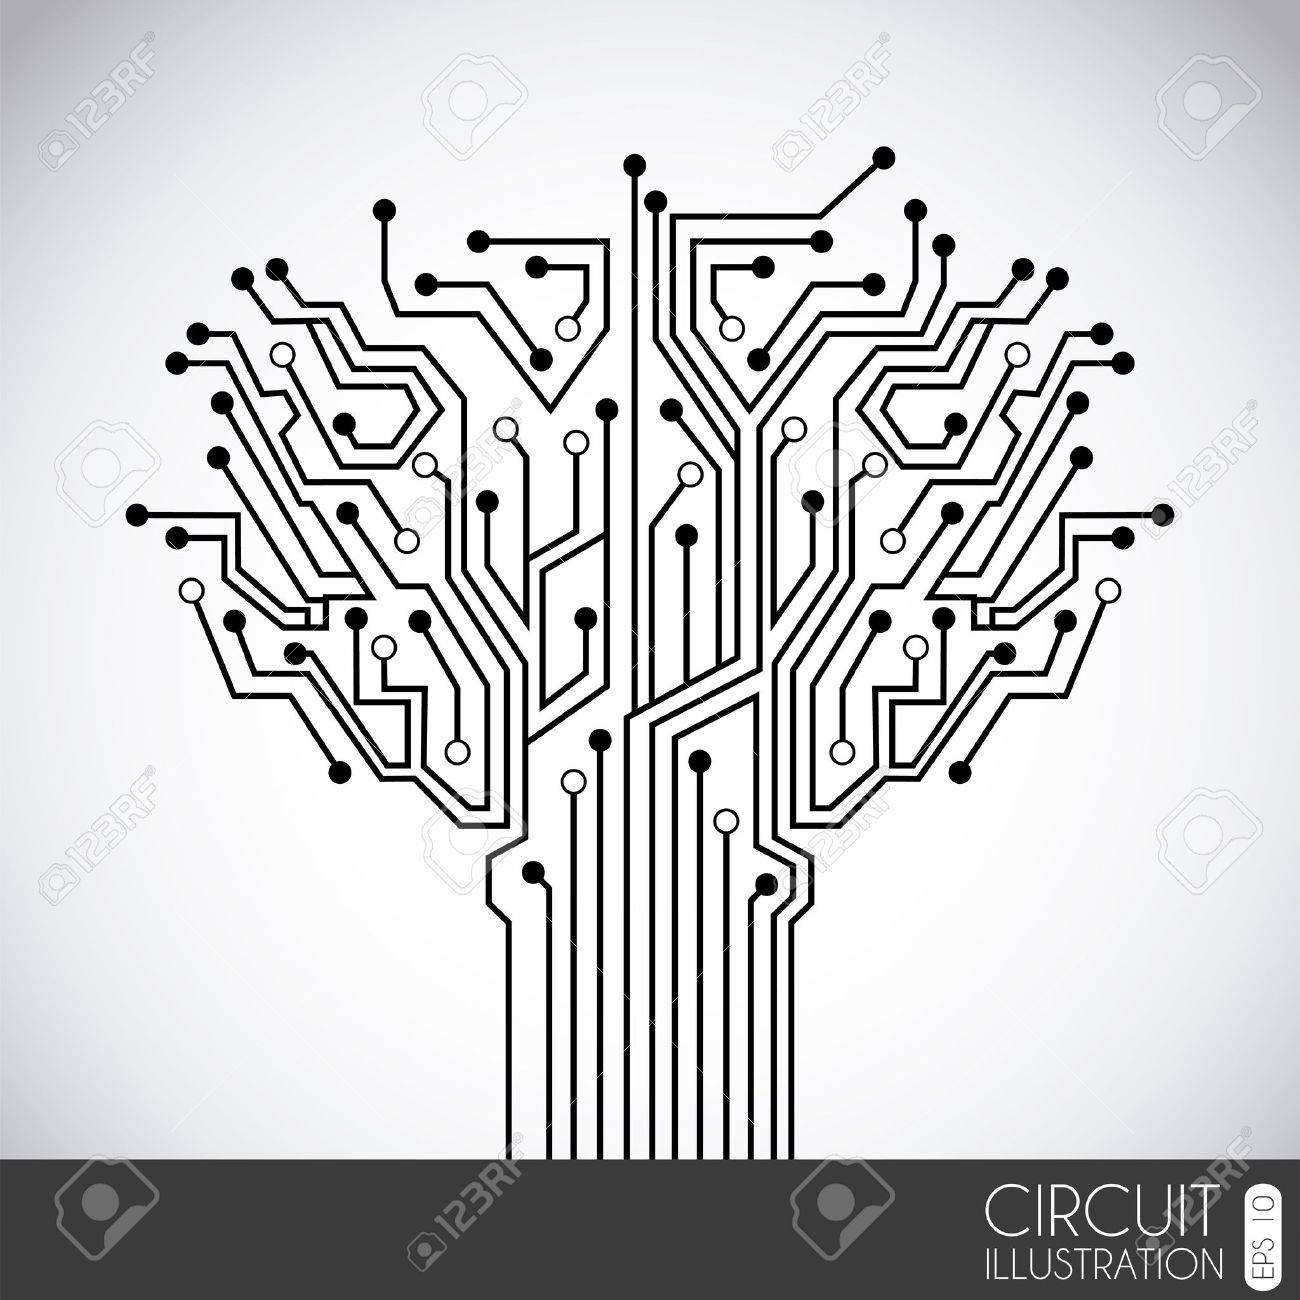 icon circuit over gray background illustration - 19772712